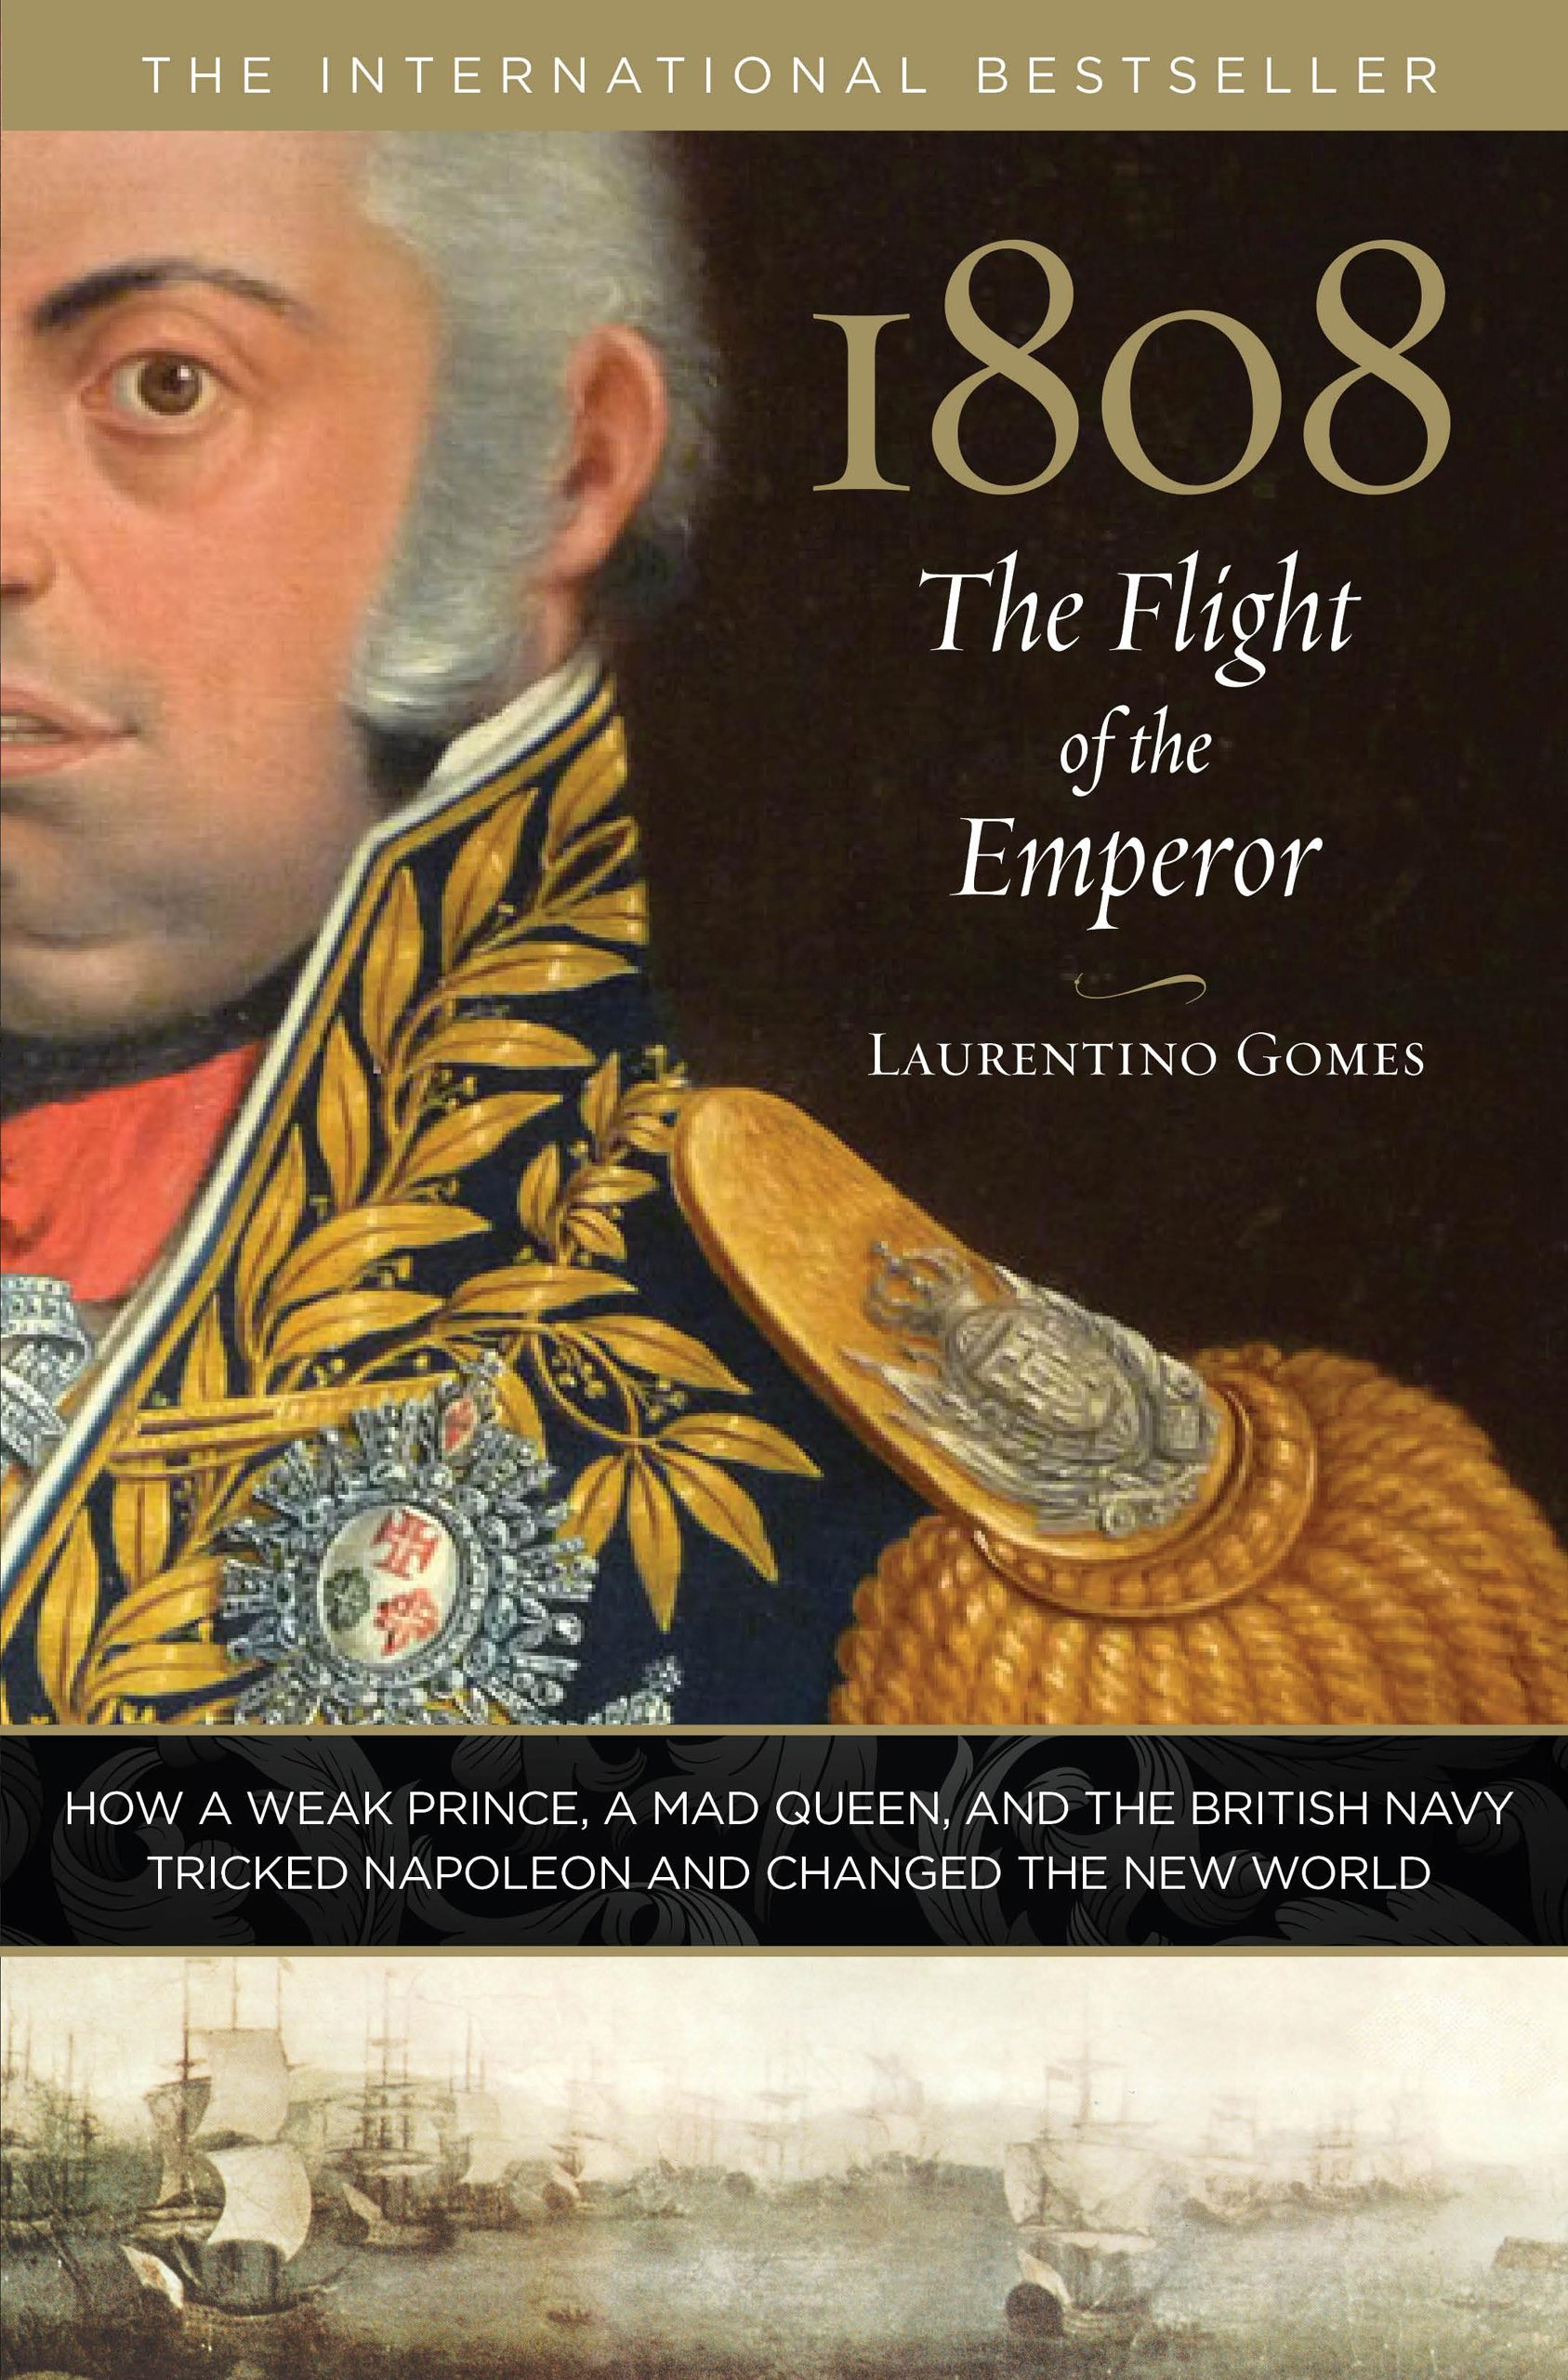 1808: The Flight Of The Emperor: How A Weak Prince, A Mad Queen, And The  British Navy Tricked Napoleon And Changed The New World: Laurentino Gomes: